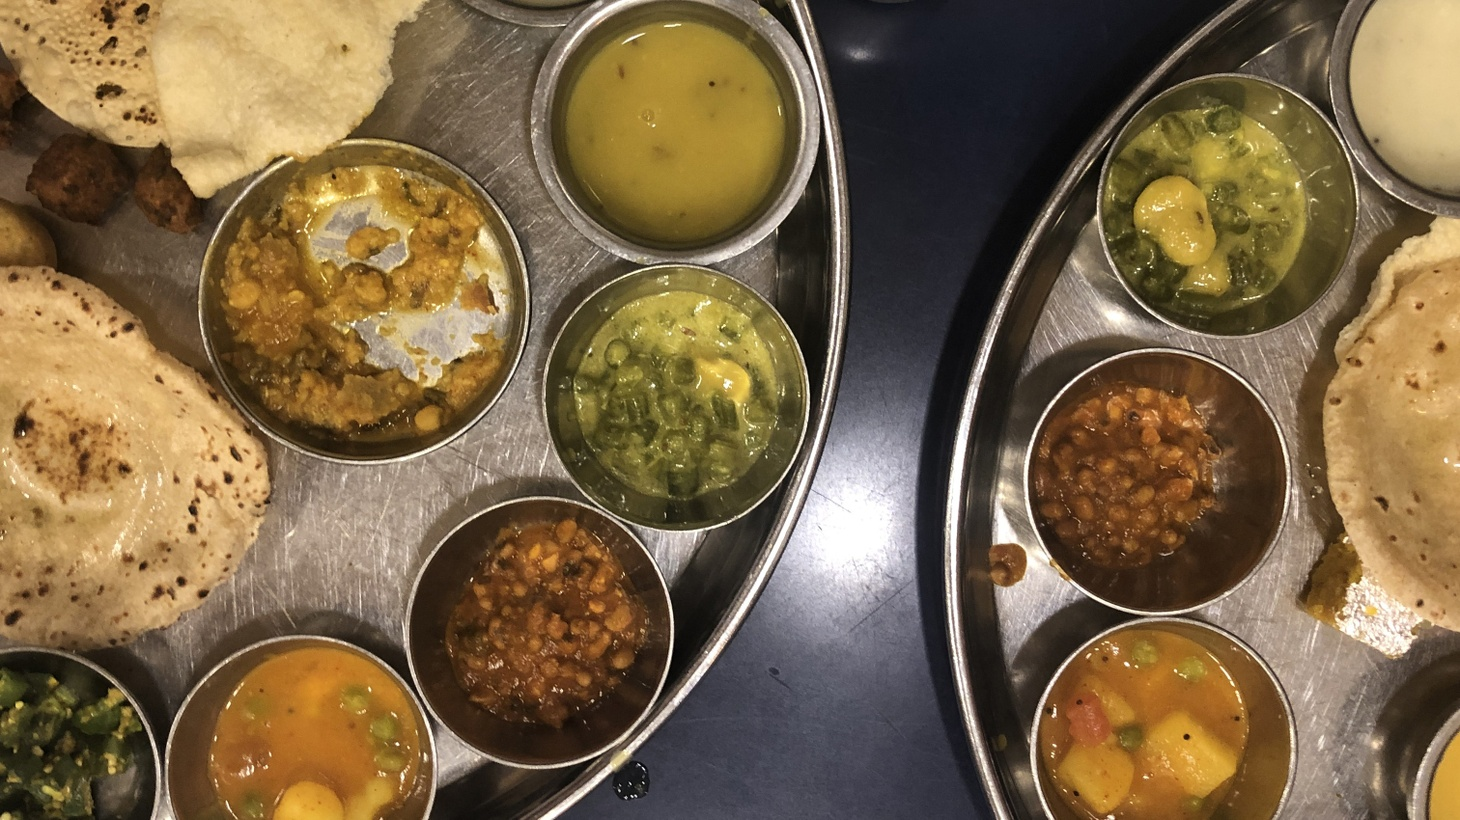 In Mumbai, Besha Rodell visited Shree Thaker Bhojanalay, which specializes in Gujarati thali.